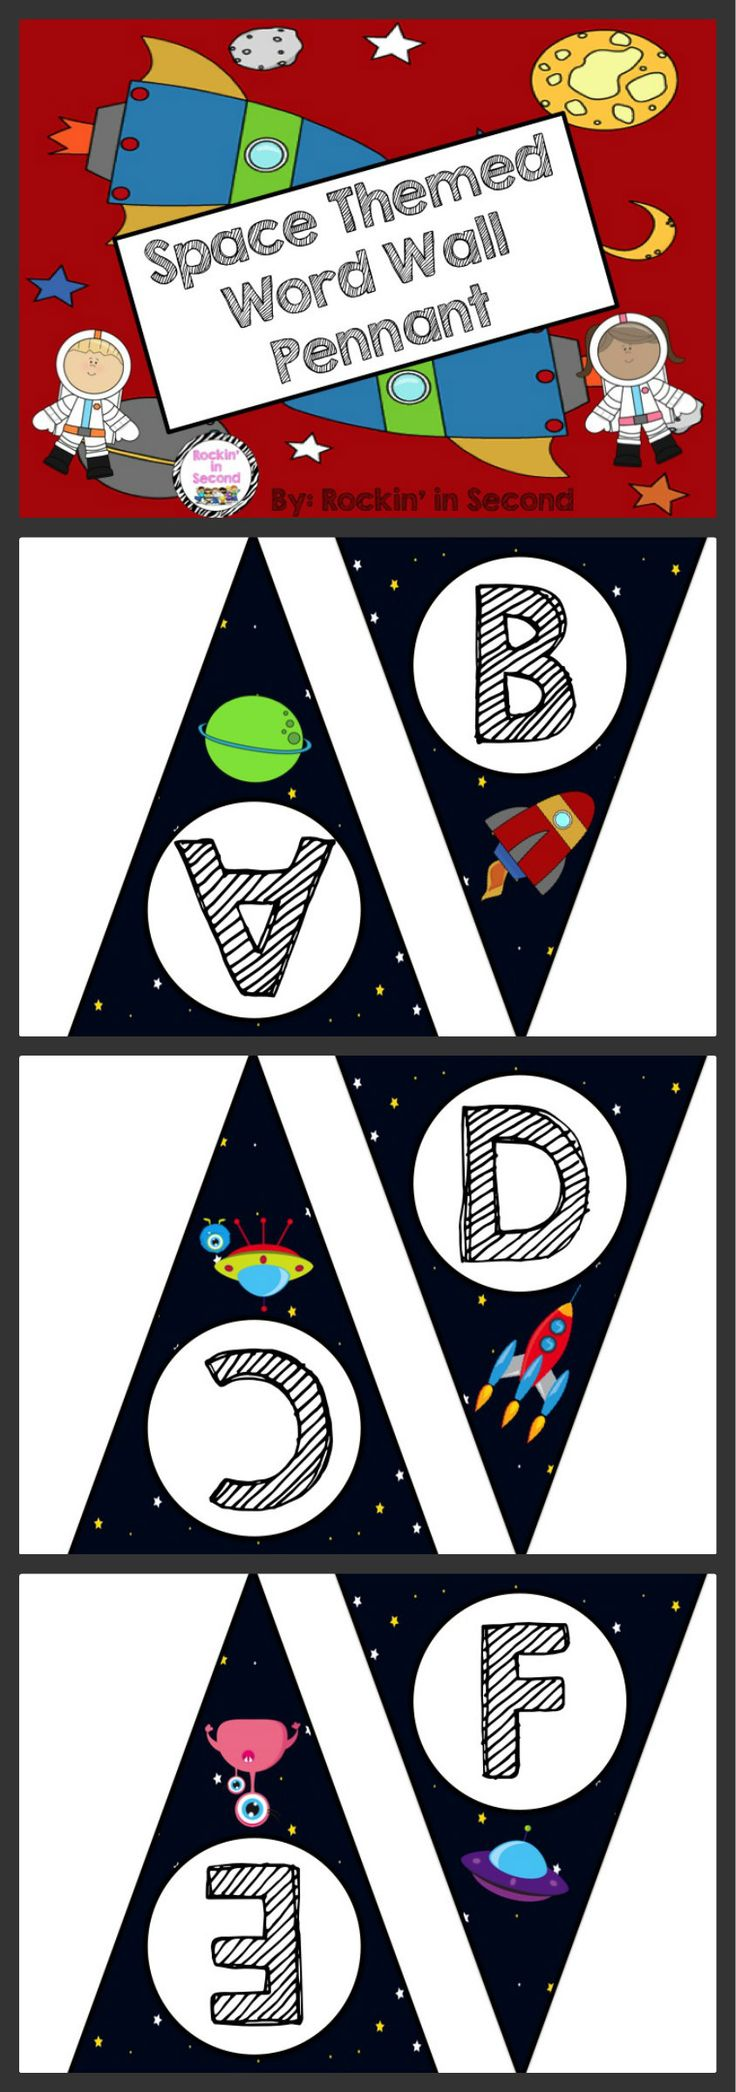 Space Themed Word Wall Pennant  Go out of this world with this space themed word wall letter pennant. Each pennant has a different item related to outer space. From planets, starts, aliens, astronauts, and many more.  Follow me on TPT for fun and exciting products and FREEBIES!